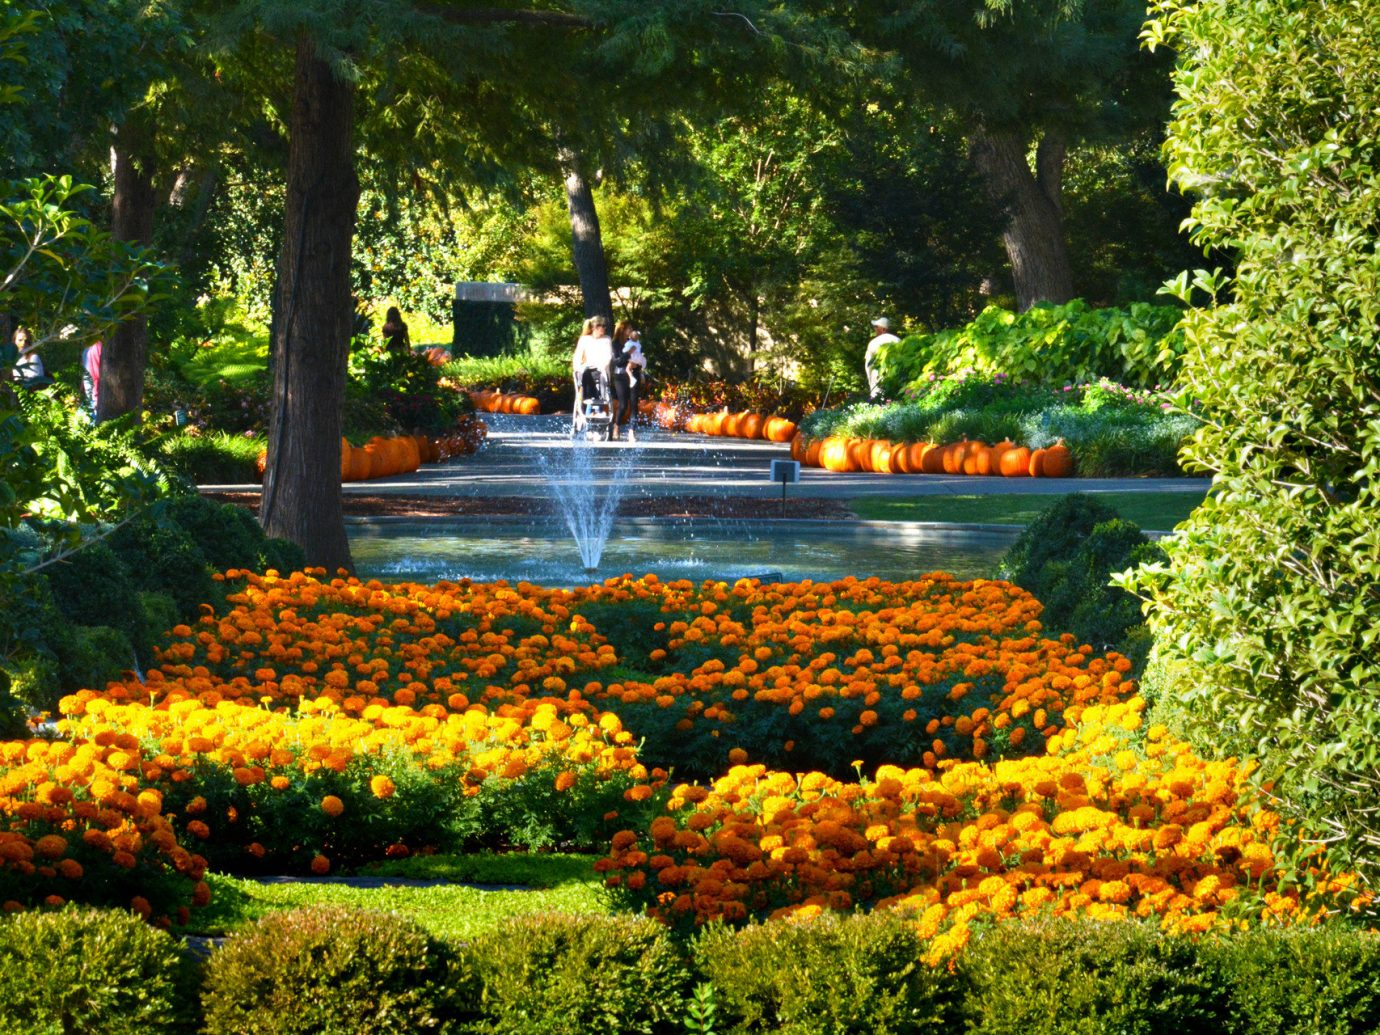 Trip Ideas tree outdoor Nature flower Garden flora botany plant season leaf autumn botanical garden park shrub pond bushes Forest surrounded